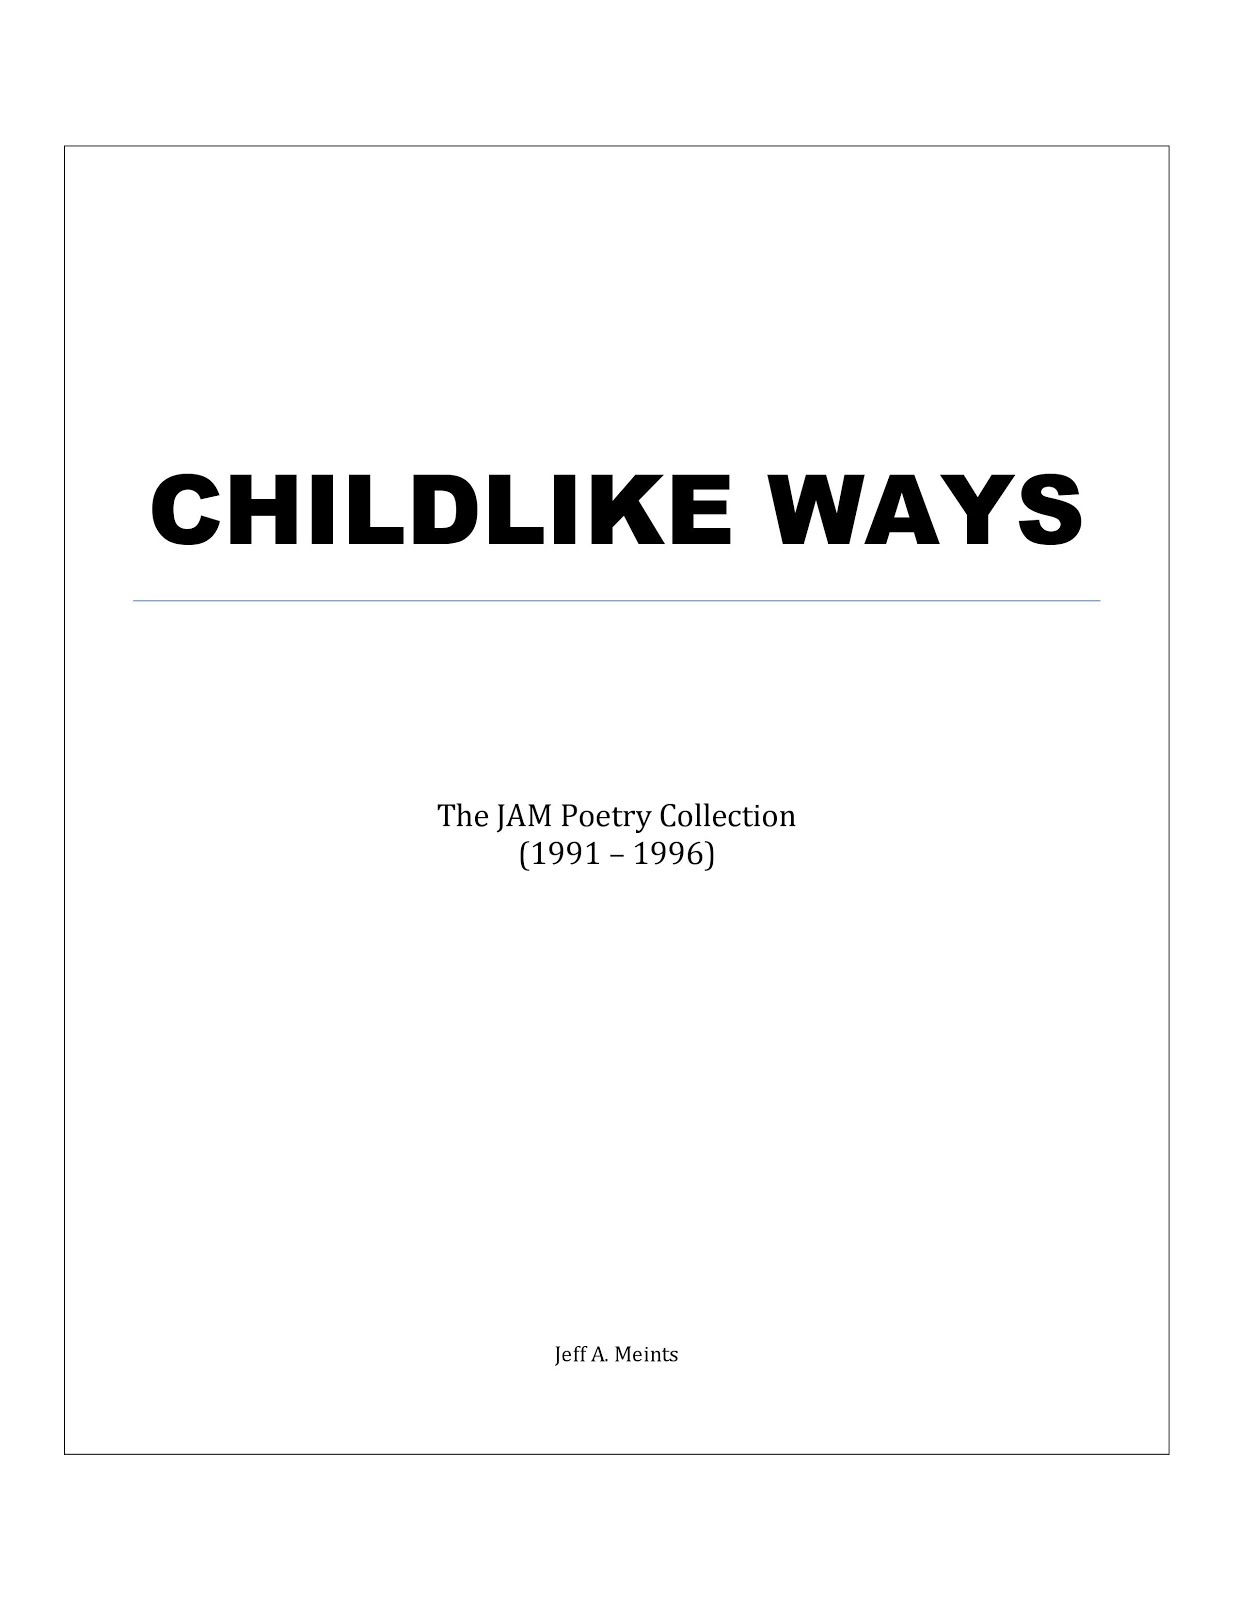 Childlike Ways - The JAM Poetry Collection (1991-1996)